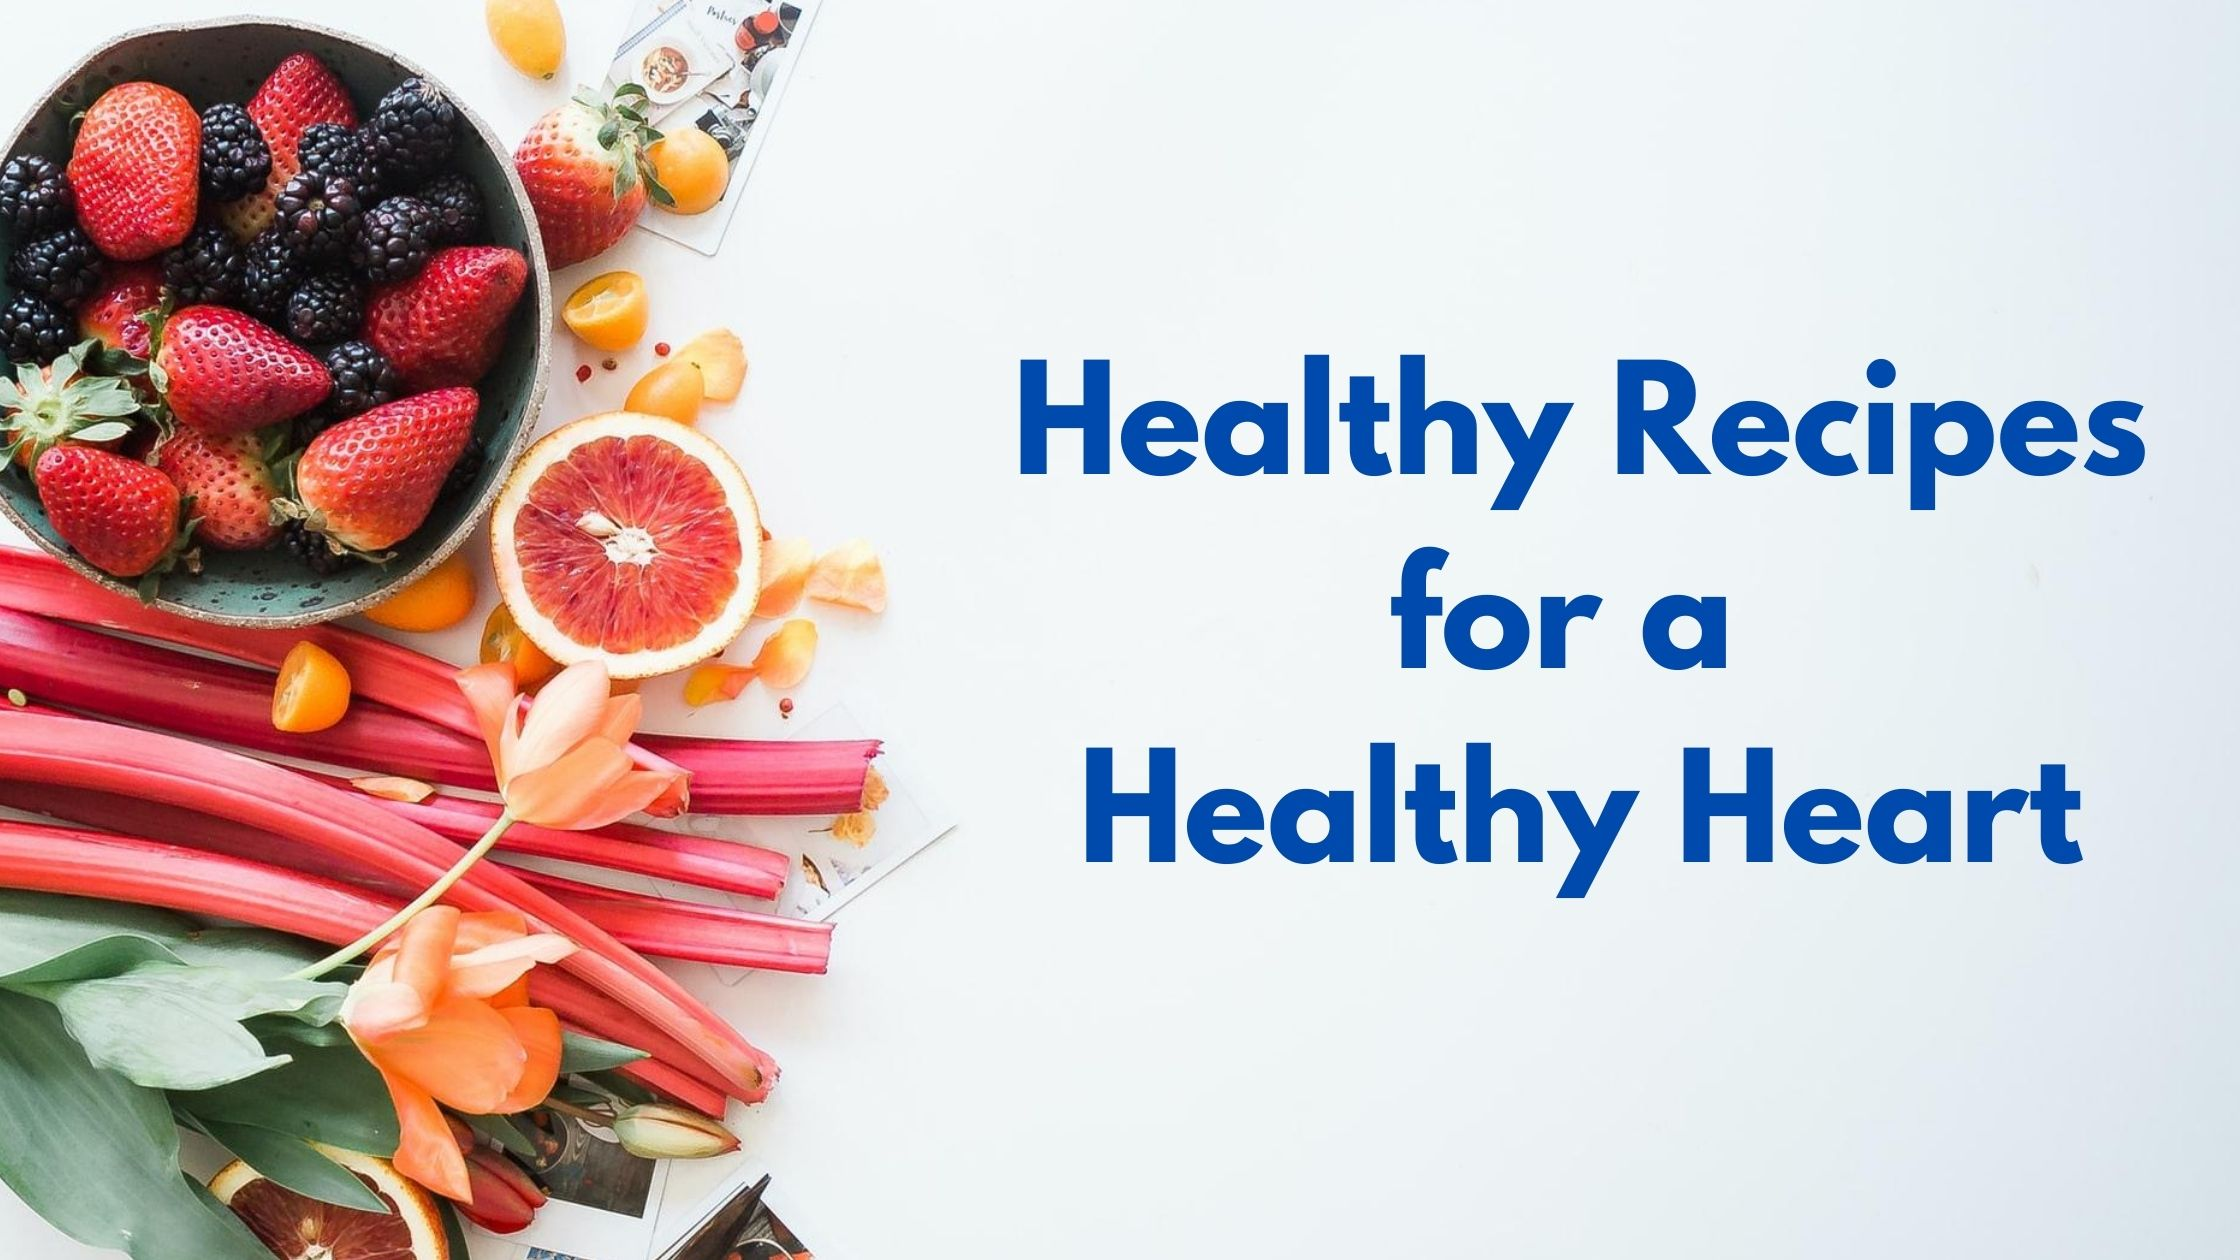 """Picture with fresh strawberries, blackberries, raspberries, grapefruit and other healthy fruits and veggies with the words """"Healthy Recipes for a Healthy Heart"""" written on it in blue font"""